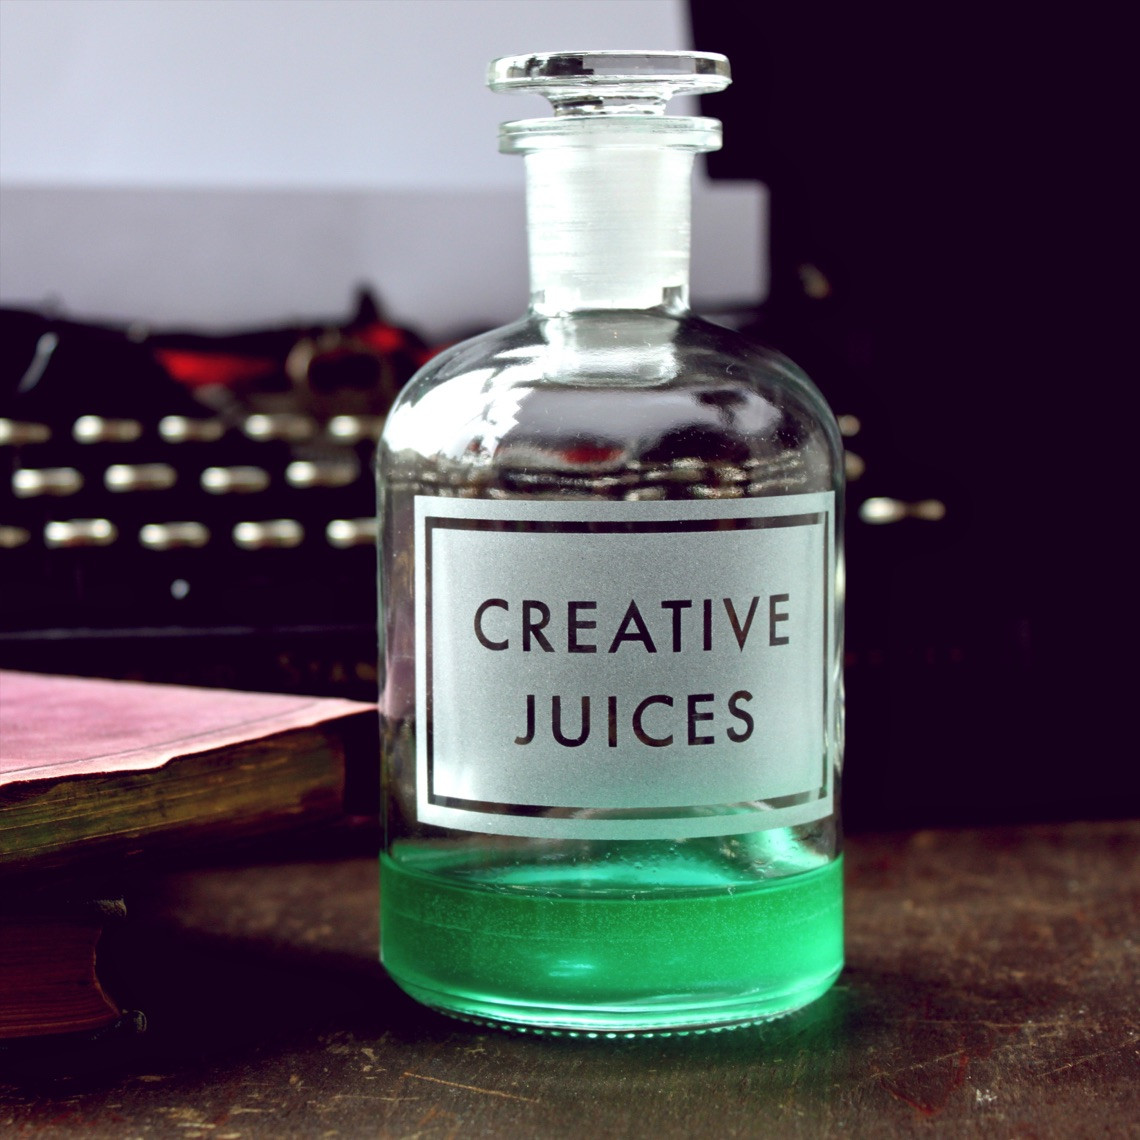 creative juices bottle vinegar & brown paper